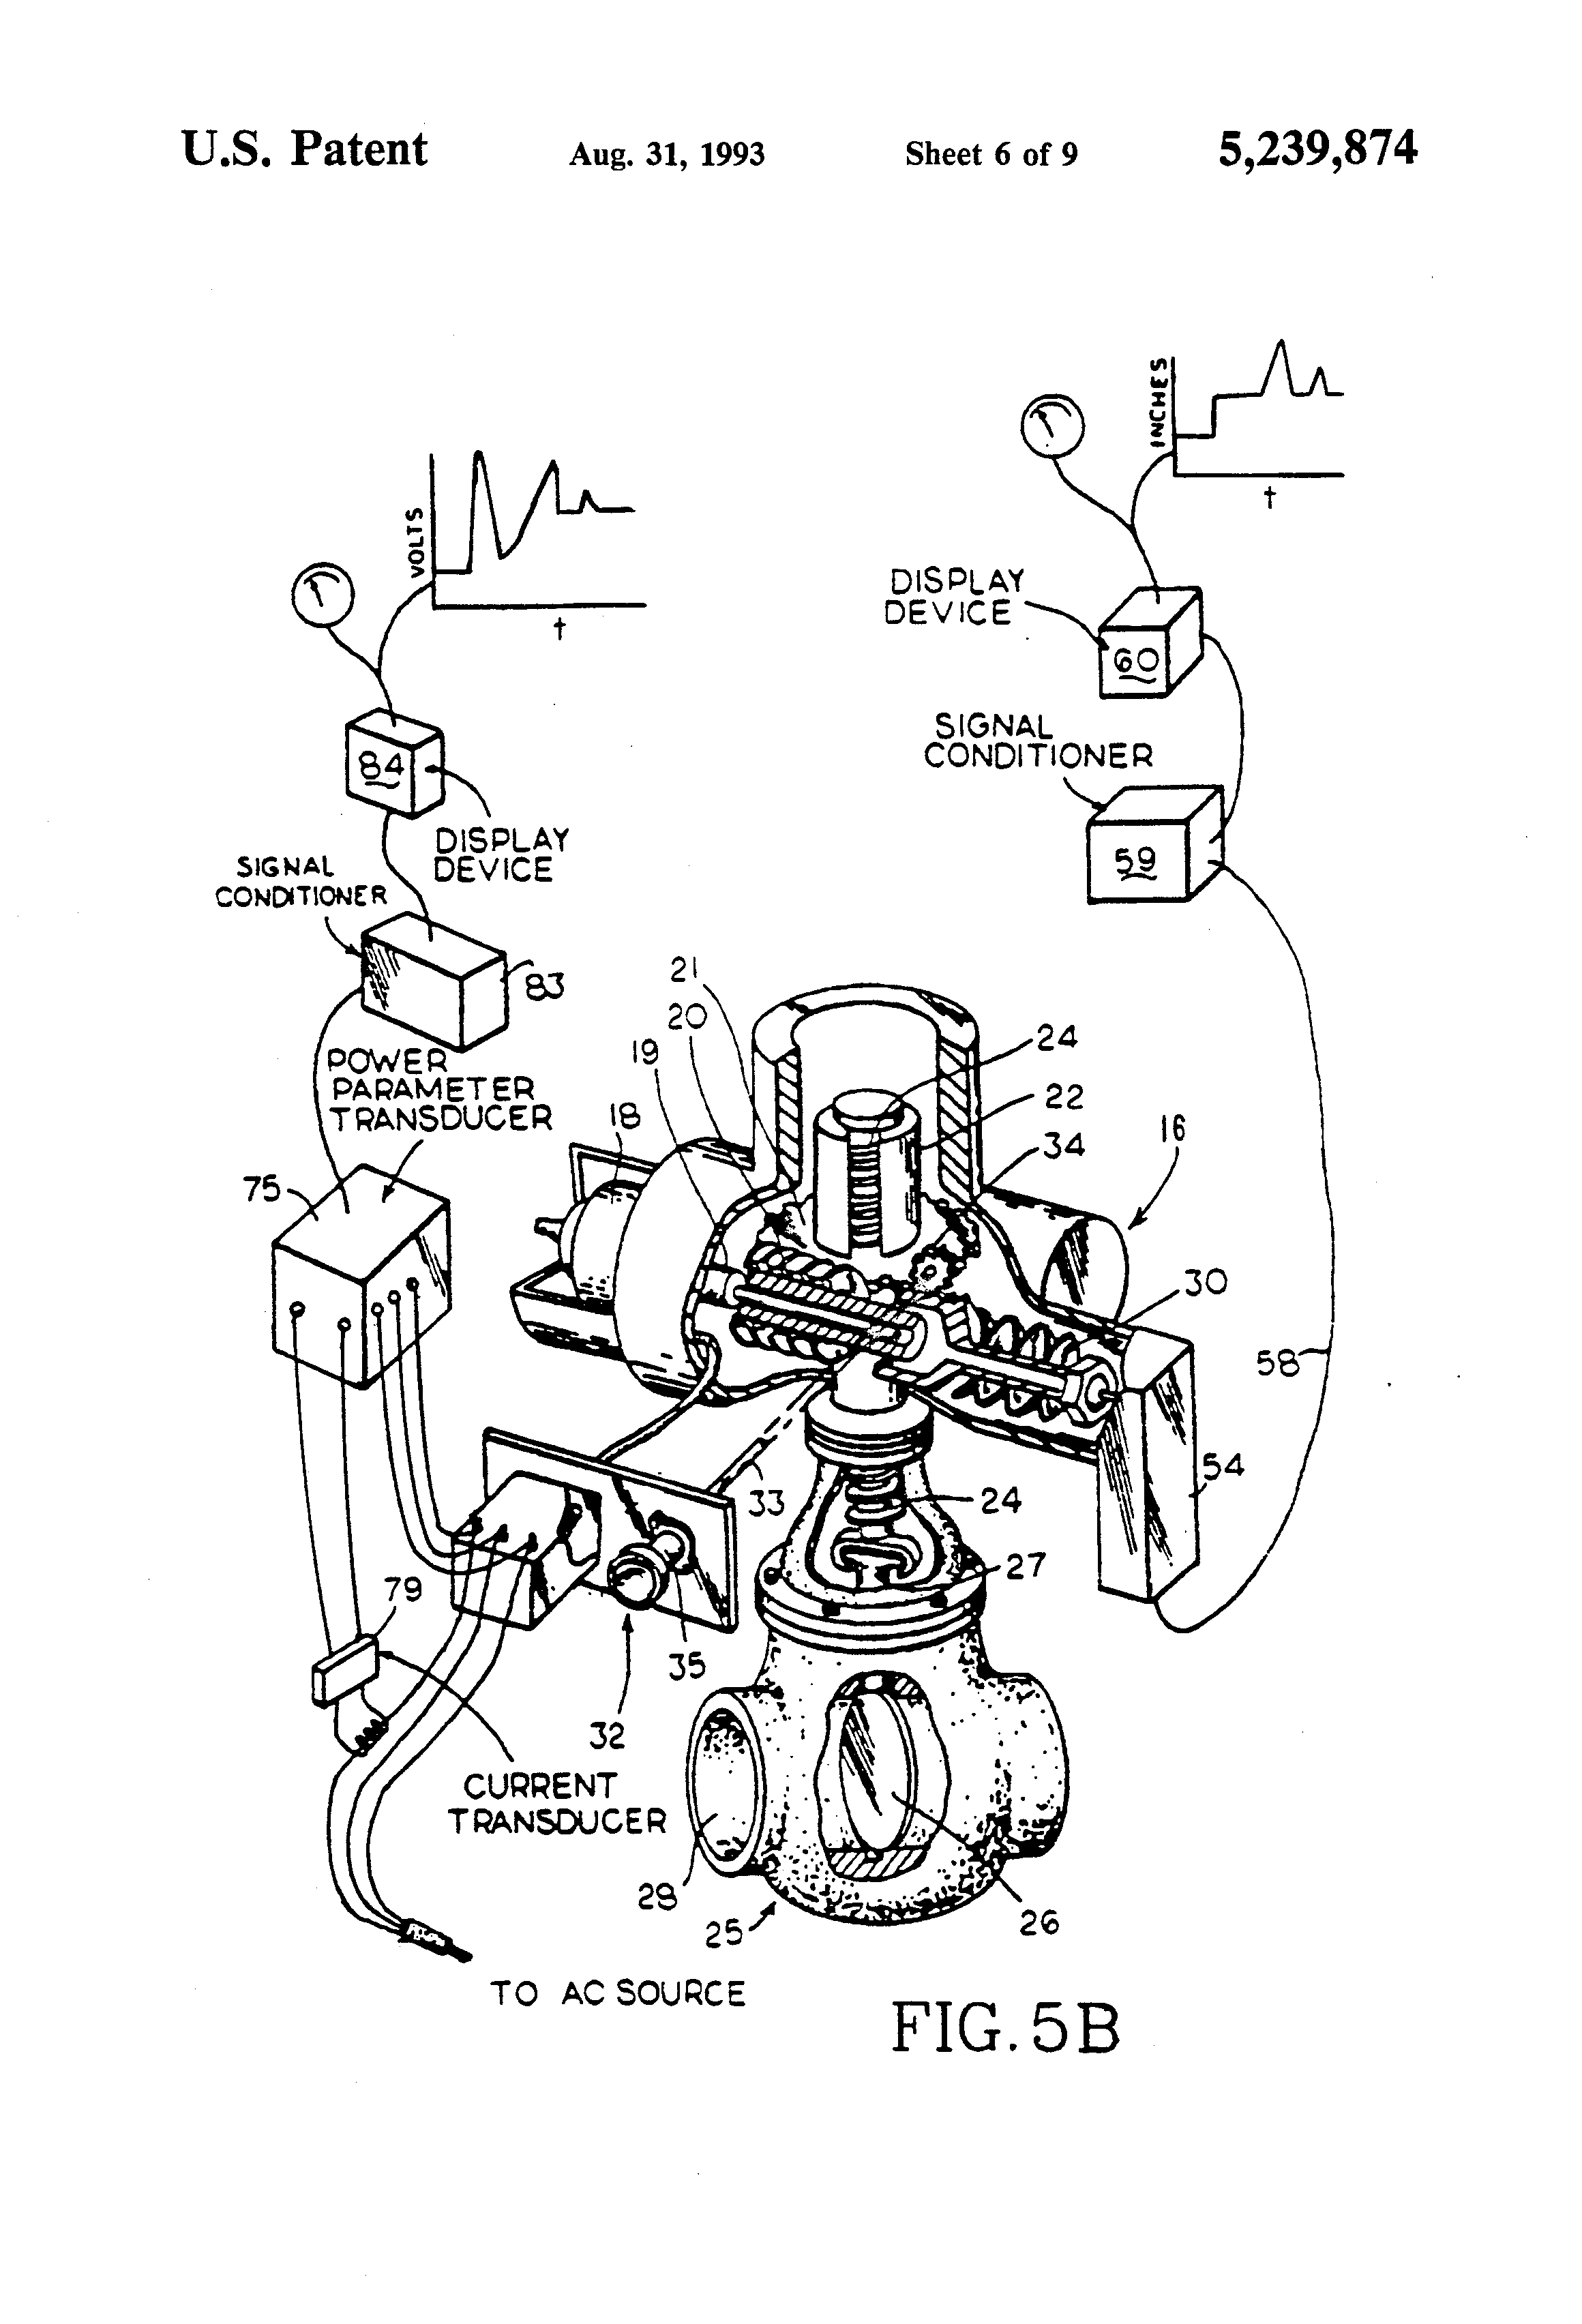 Colorful Rotork Actuator Wiring Diagram Illustration - Electrical ...